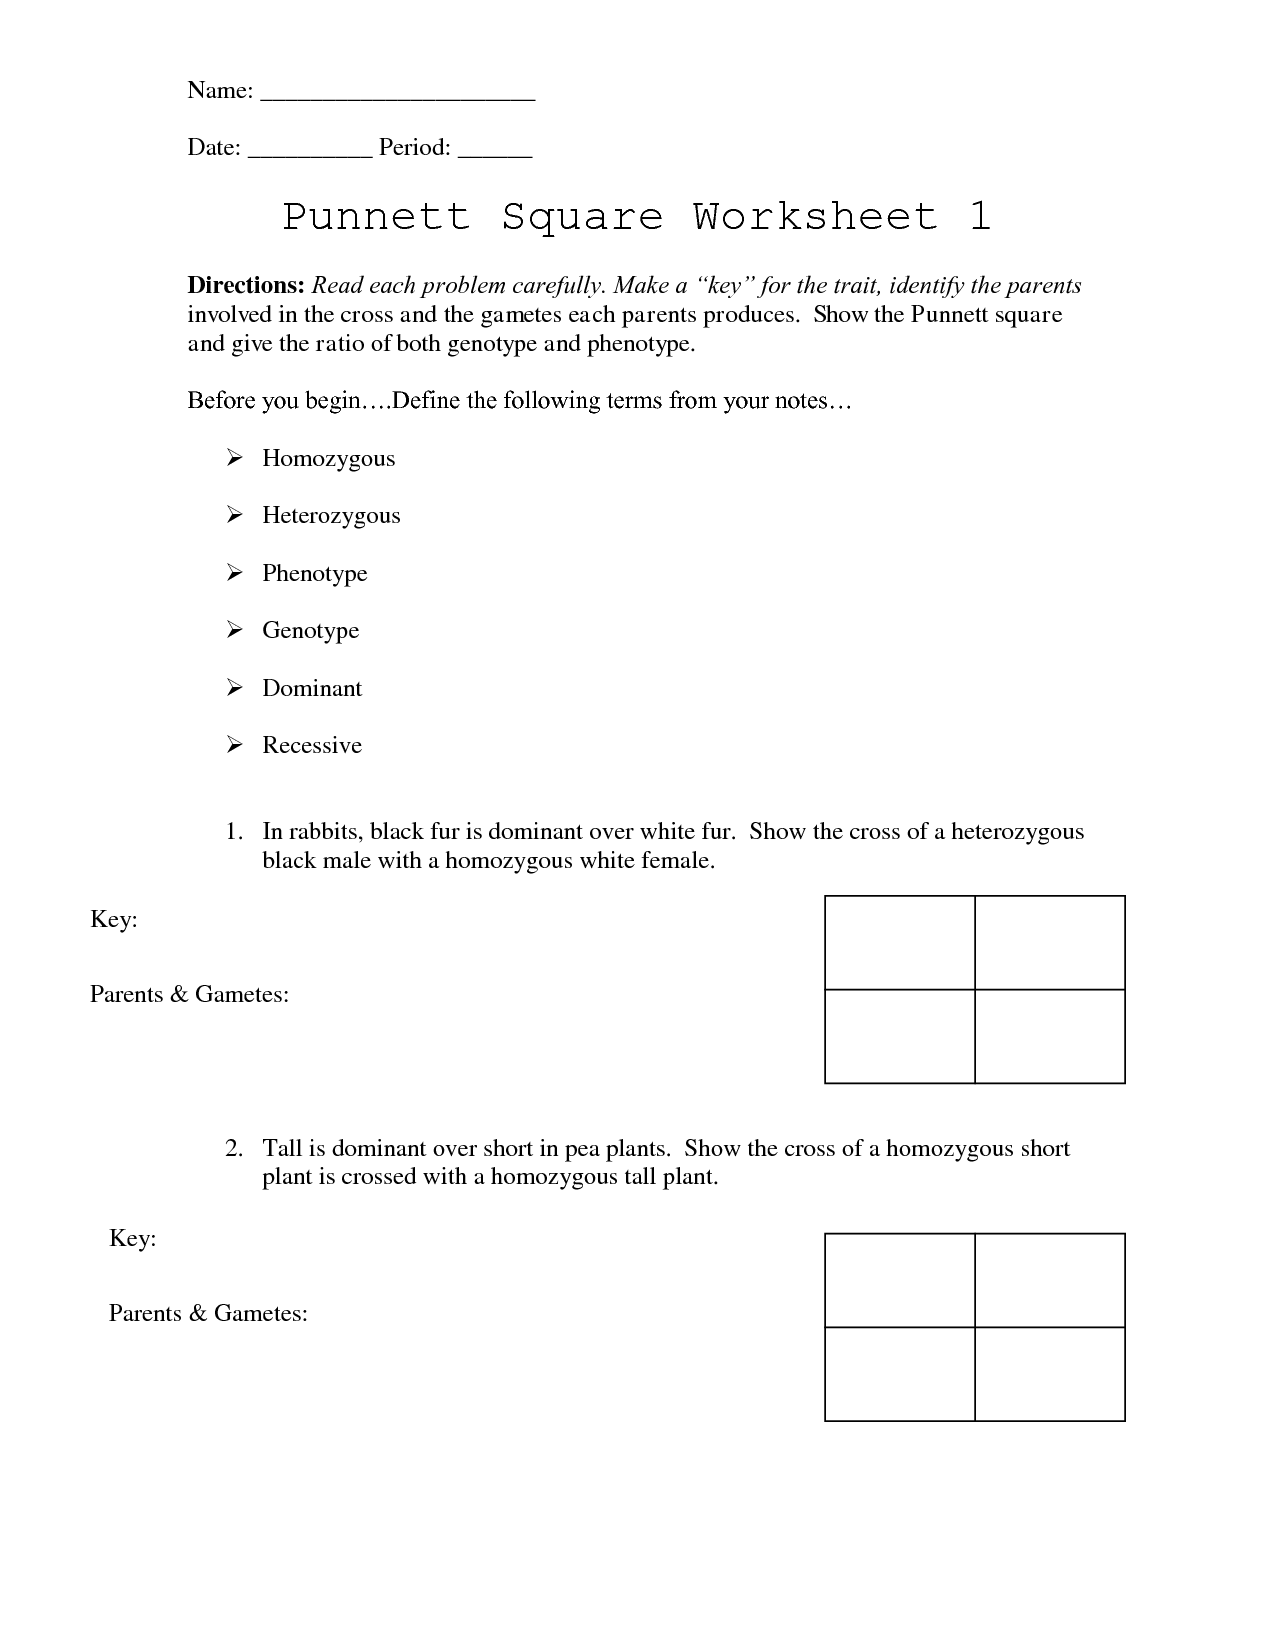 Punnett Square Worksheet 1 Answer Key In